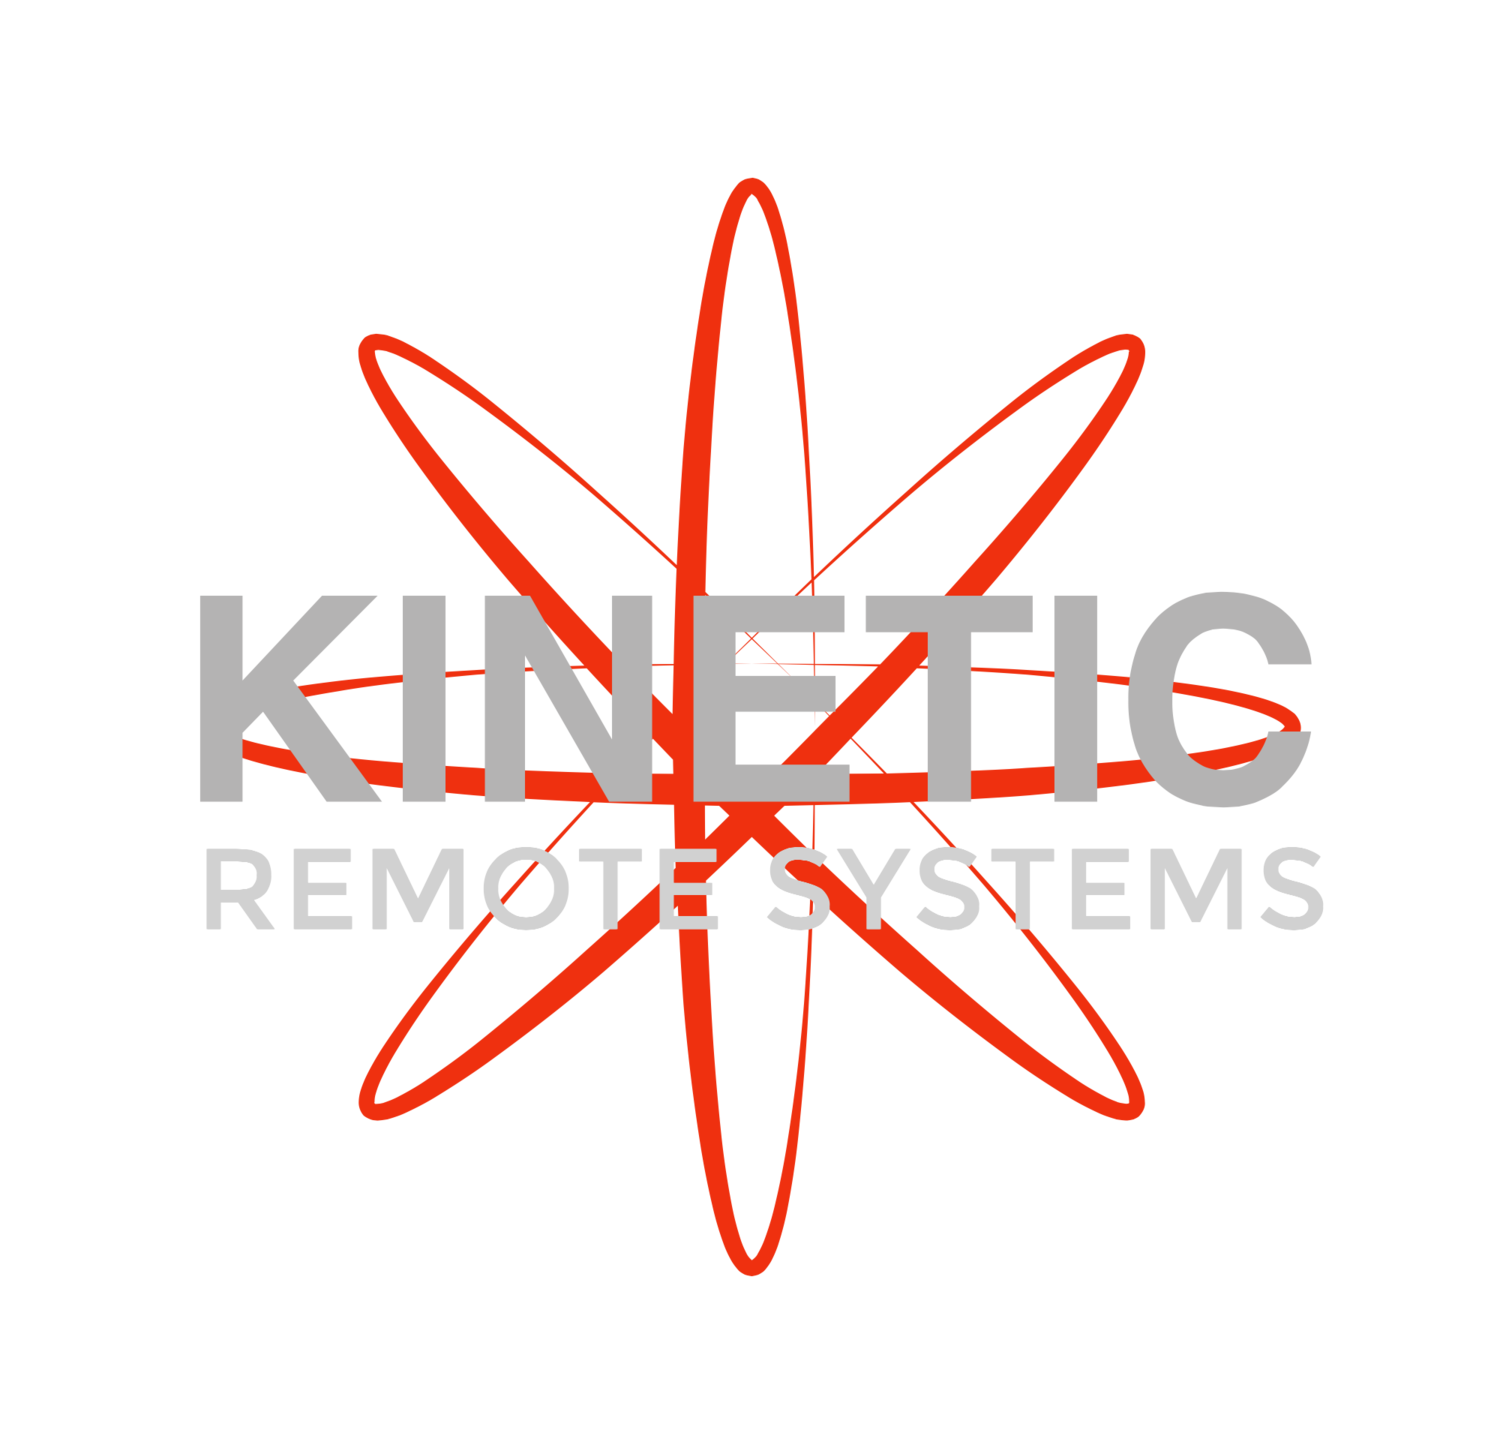 Kinetic Remote Systems